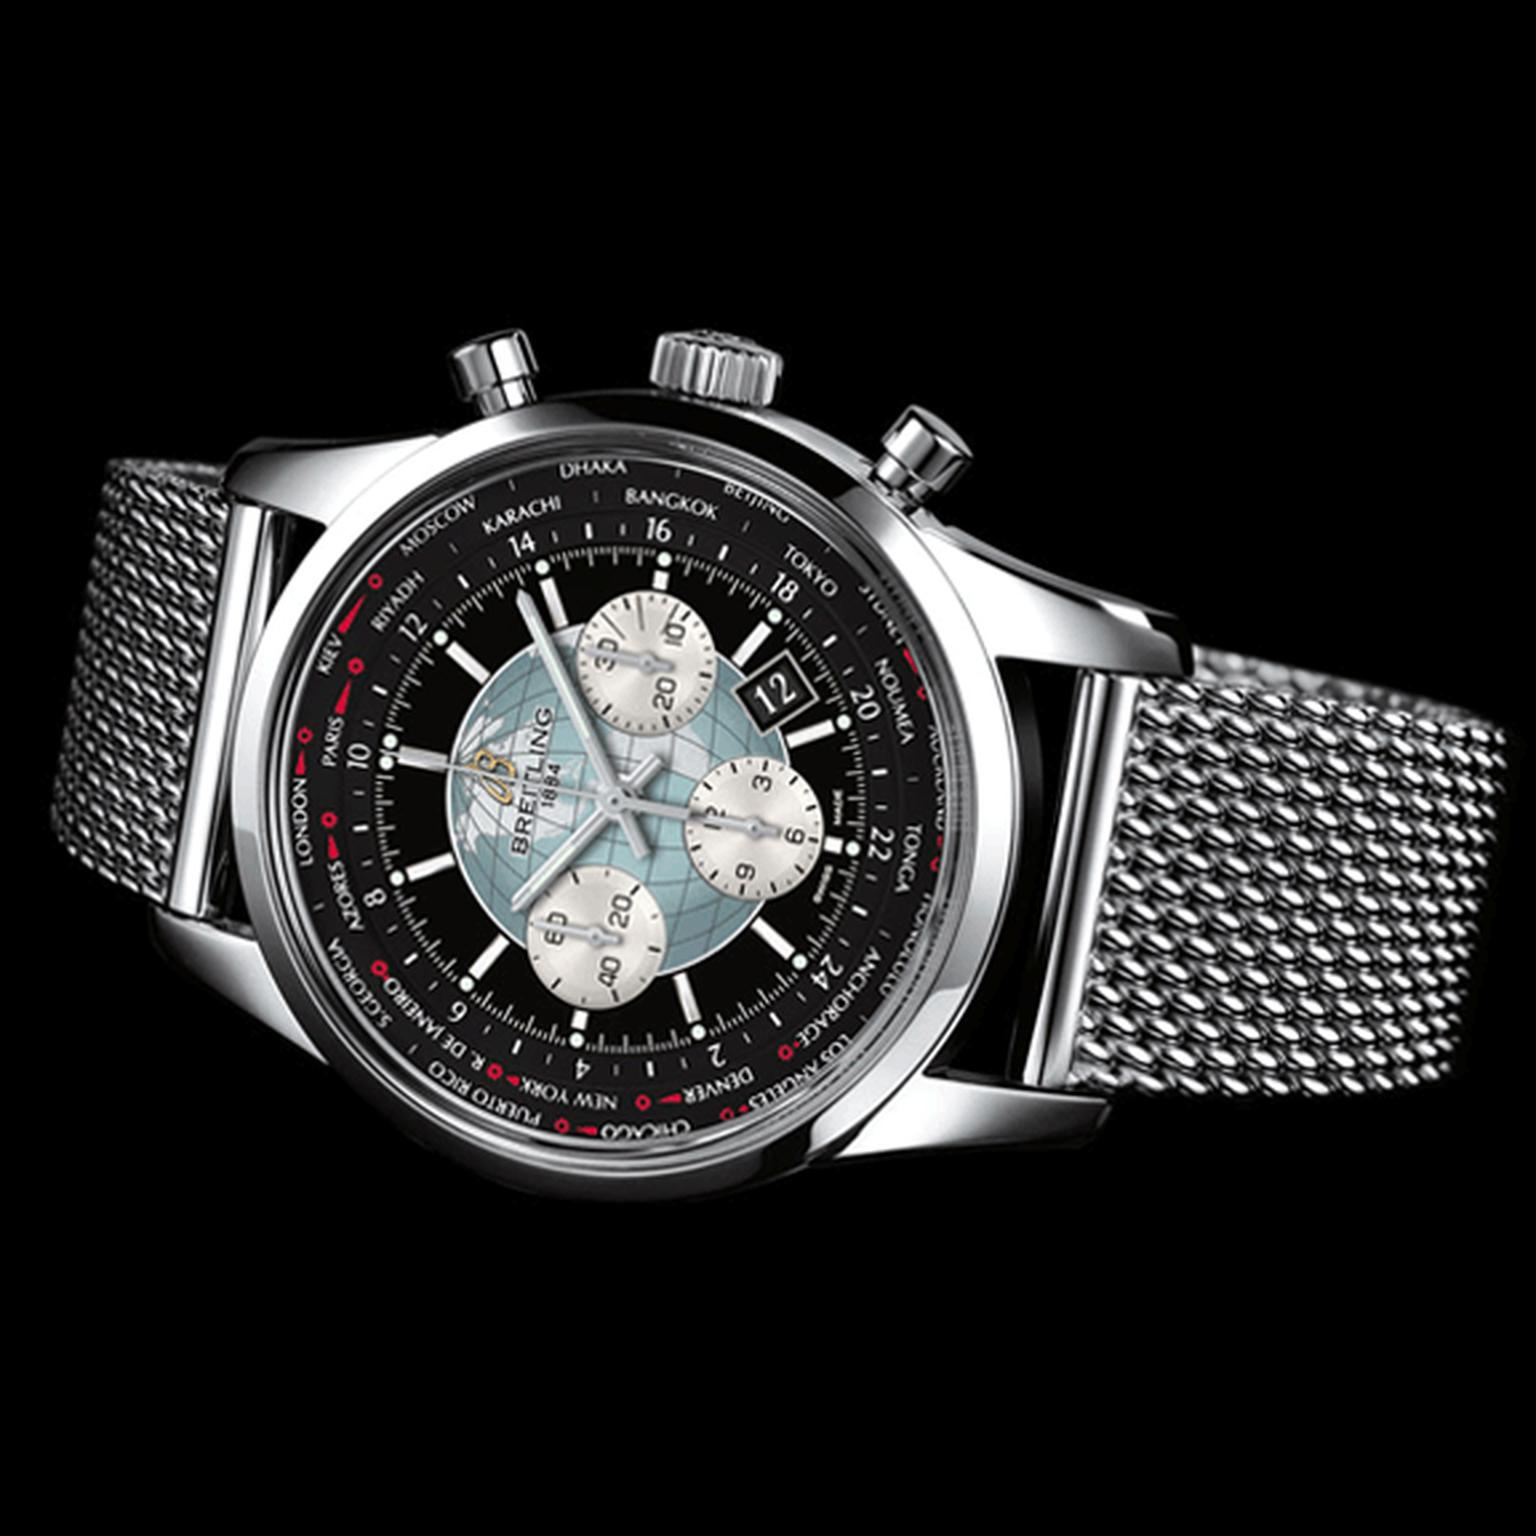 Breitling Brand Image